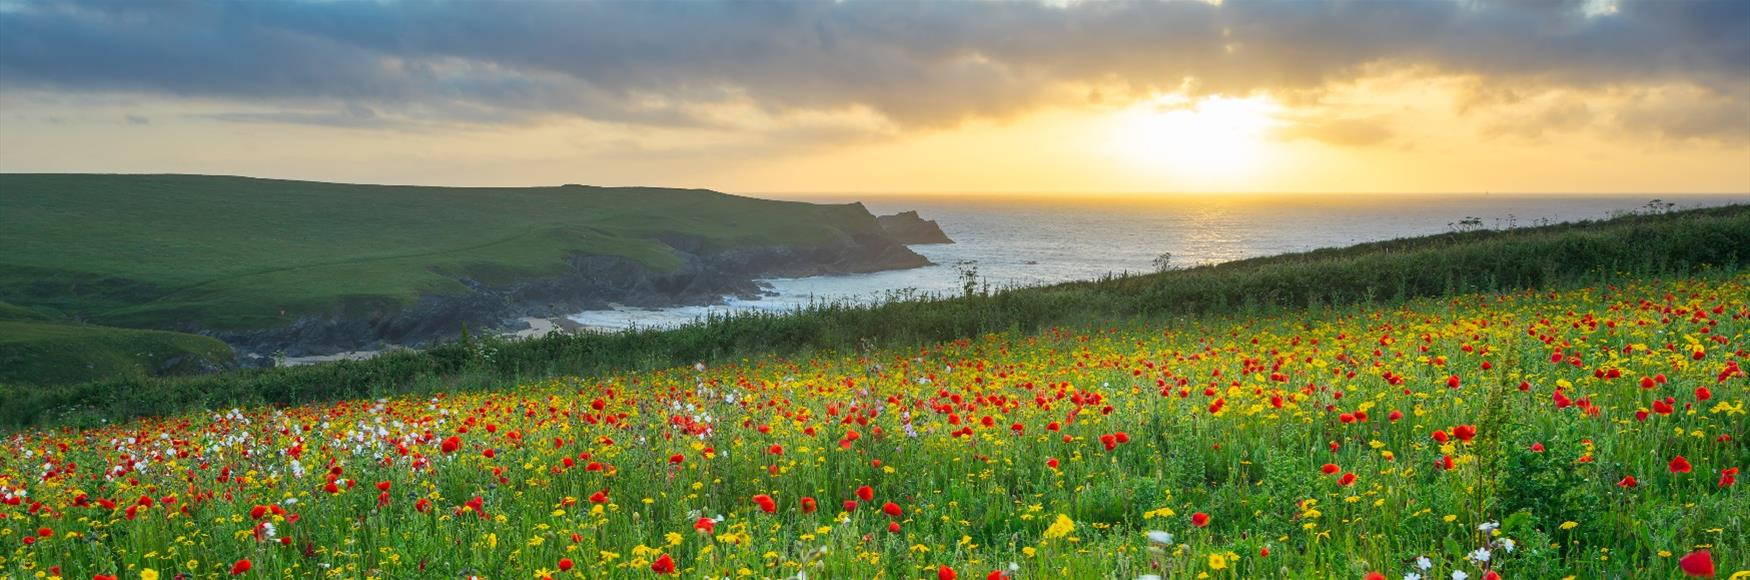 Poppy Fields at West Pentire